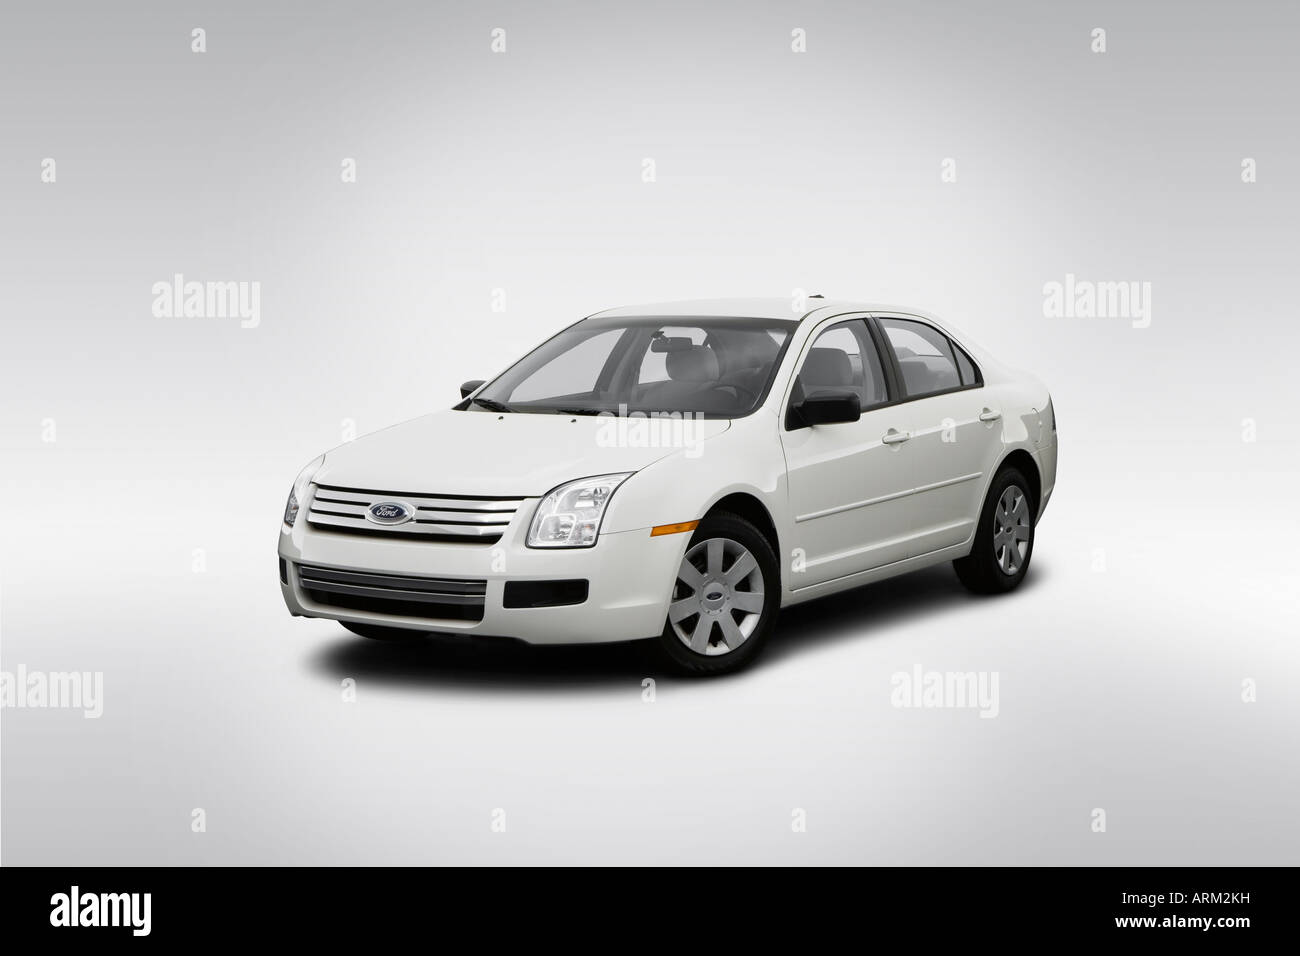 2008 Ford Fusion S in White - Front angle view - Stock Image